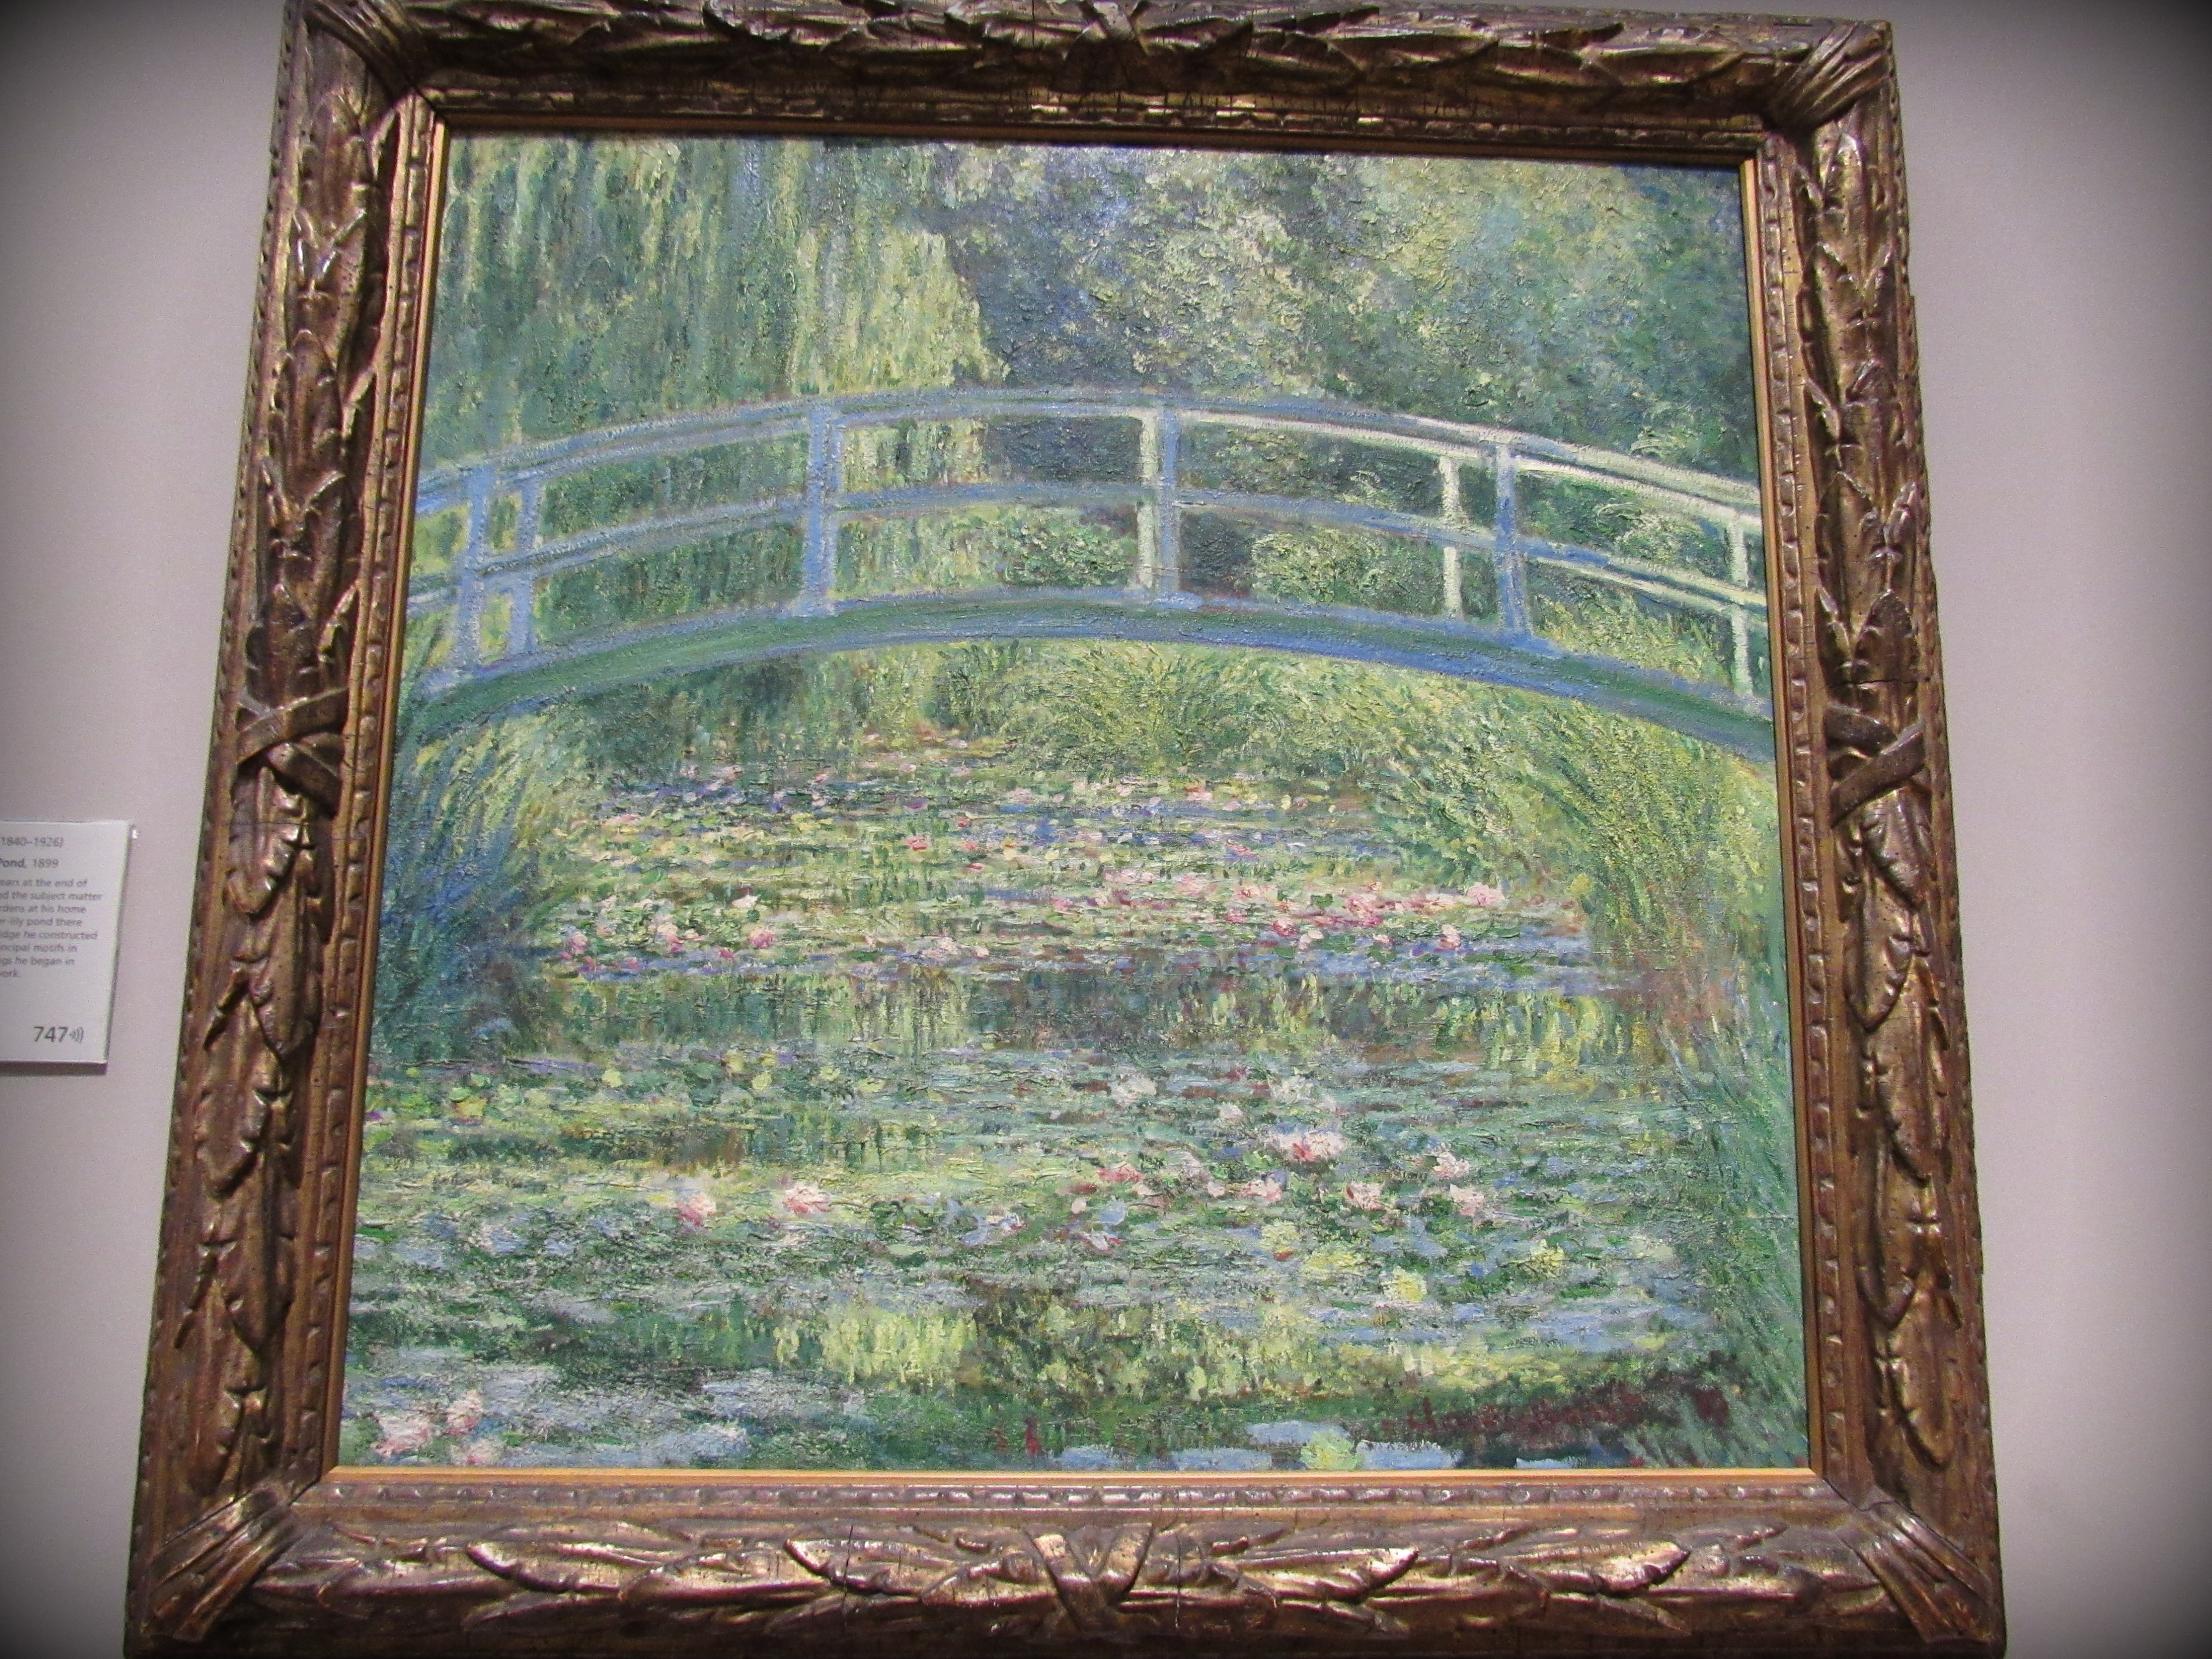 Claude Monet: The Water-Lily Pond, 1899.  The National Gallery, Londres.